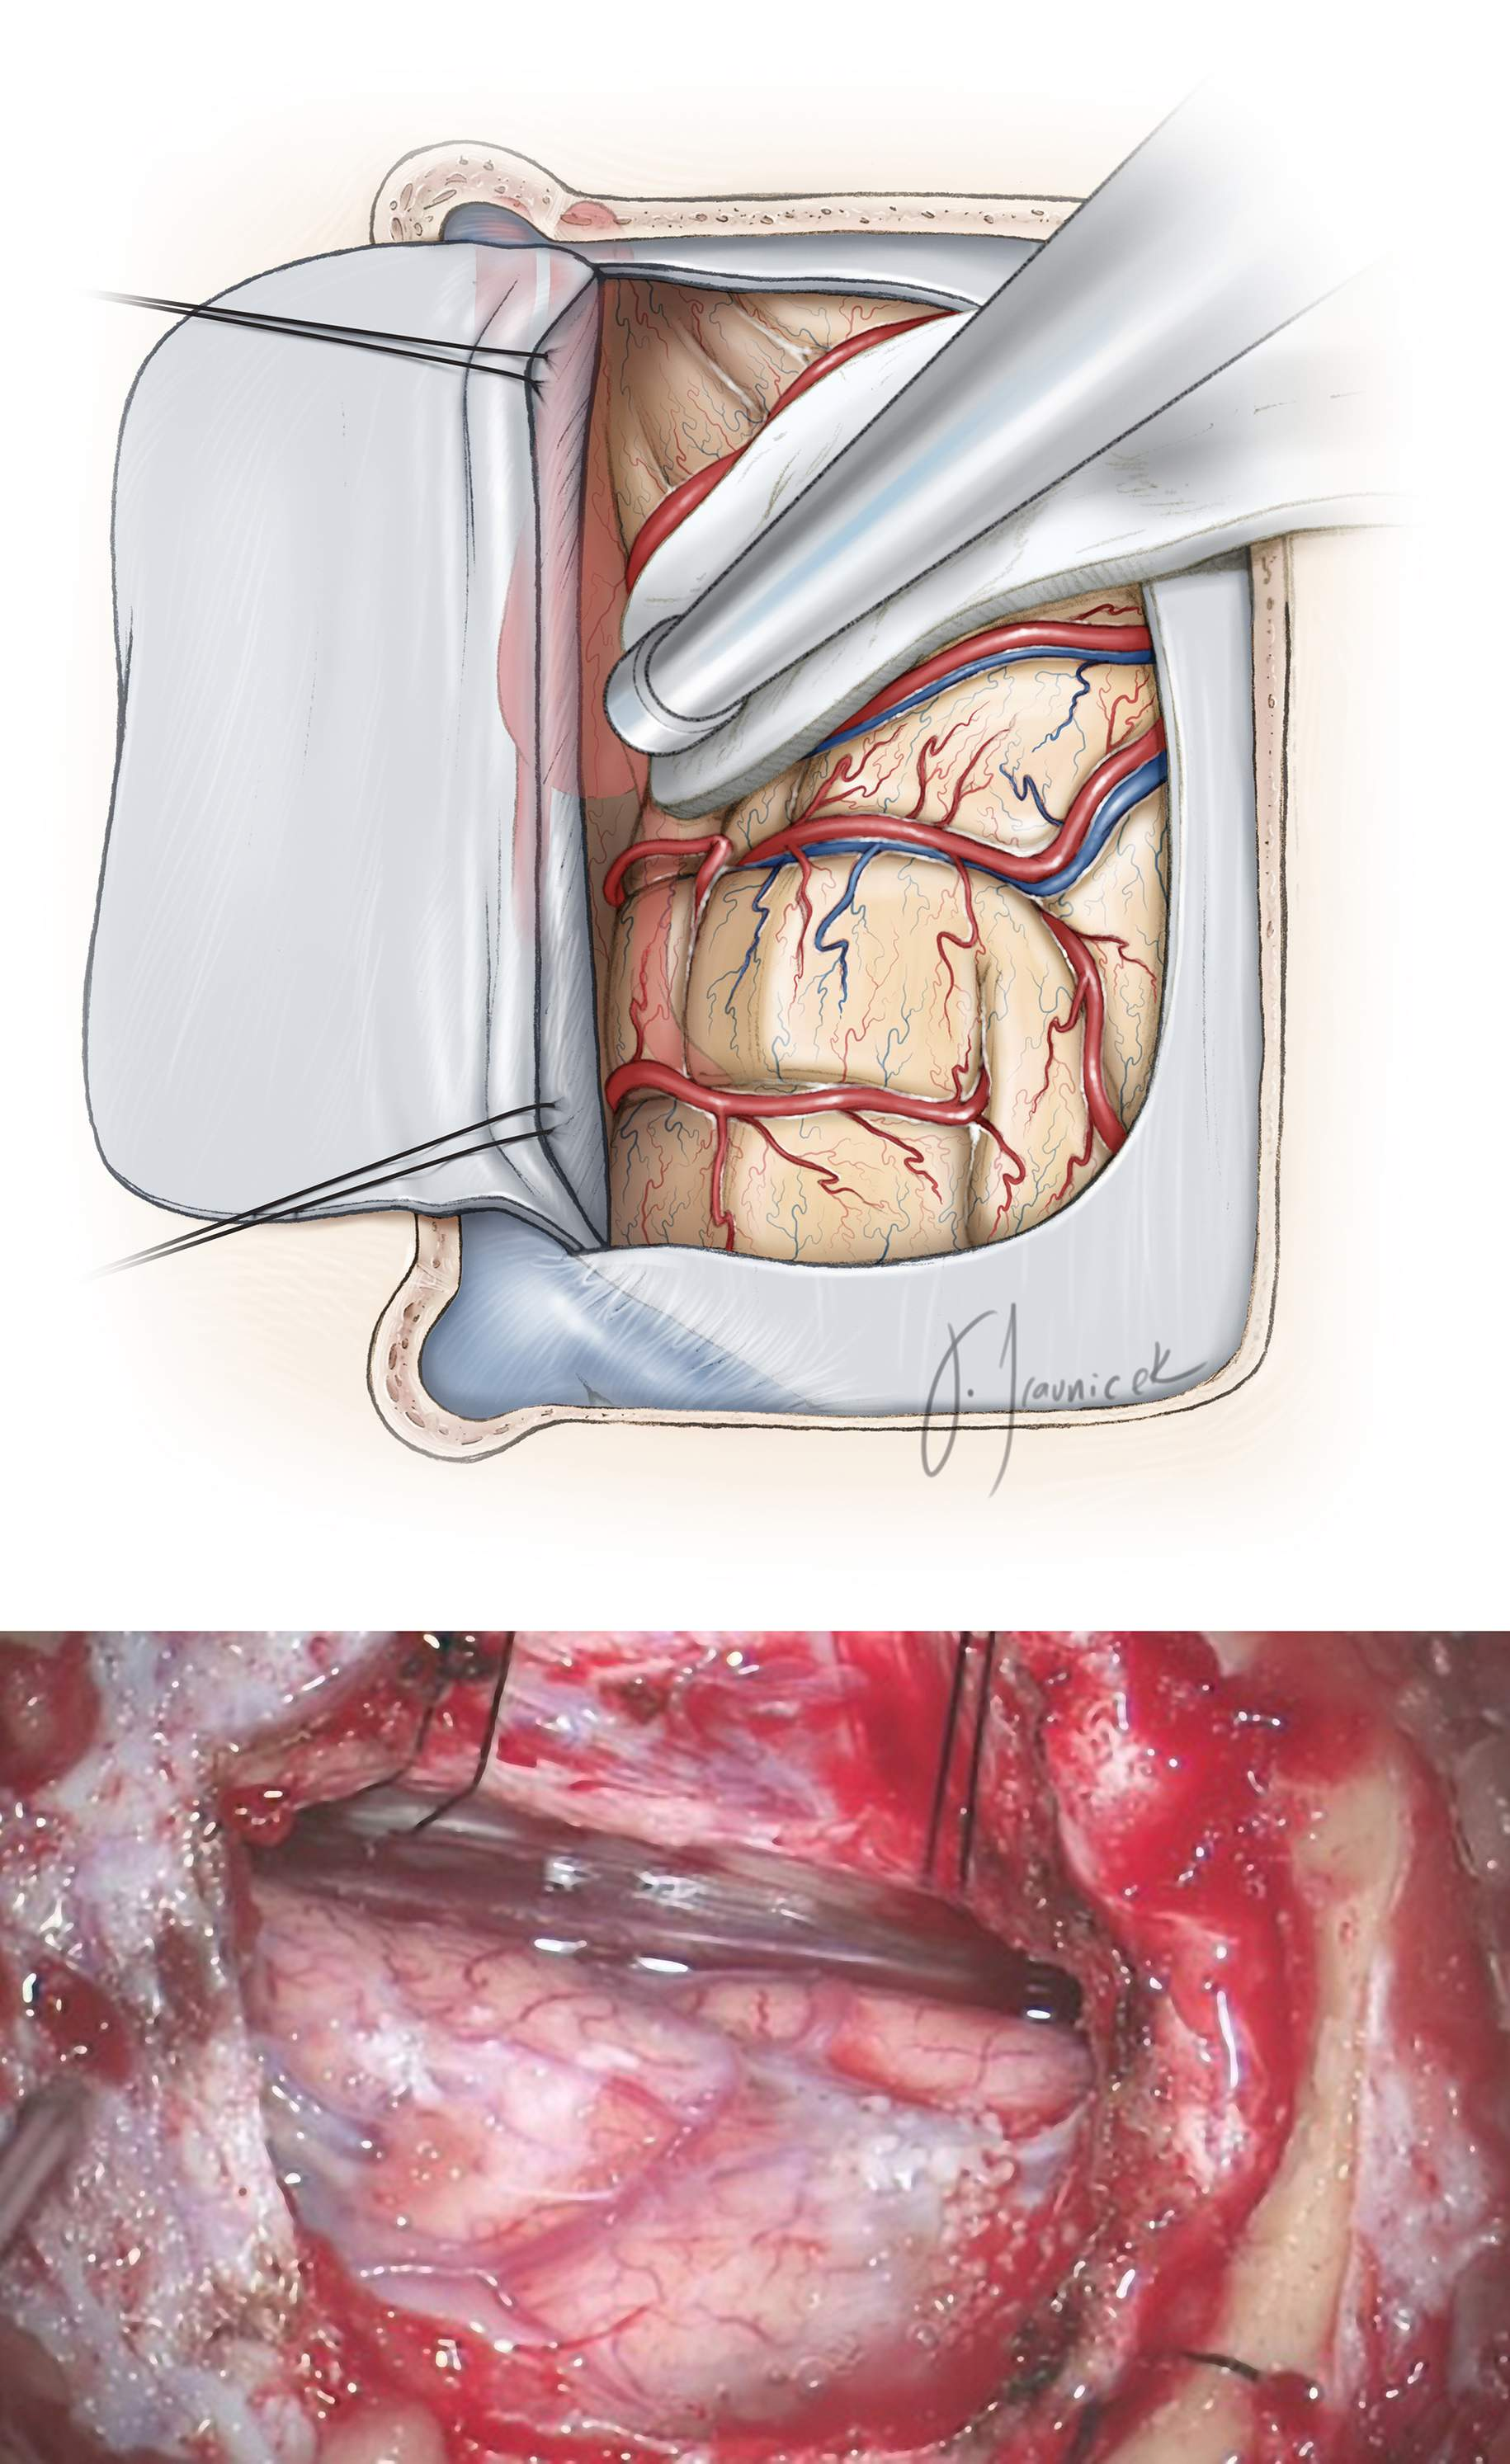 Figure 10: The dura is opened in a U-shaped flap based on the sagittal sinus (top image-supine position). Retraction sutures in the superior falx rotate the venous sinus laterally and expand the interhemispheric reach. Some small bridging veins may be sacrificed, but the larger ones should be preserved. Note that gravity retraction facilitates mobilization of the dependent hemisphere away from the midline (bottom image-lateral position).